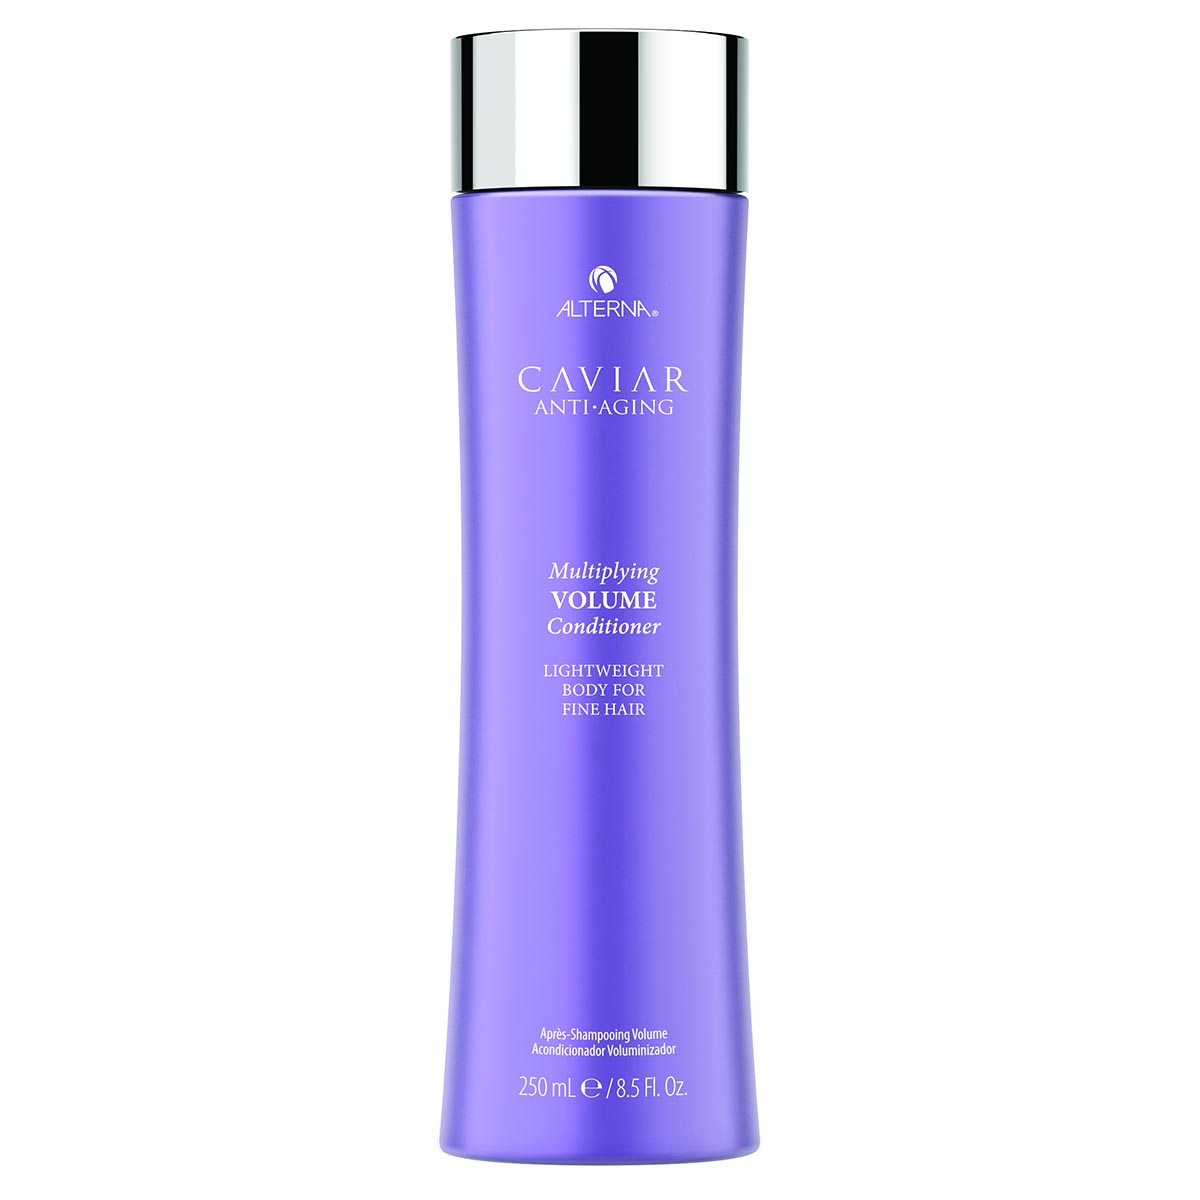 CAVIAR ANTI-AGING MULTIPLYING VOLUME CONDITIONER (ACONDICIONADOR)